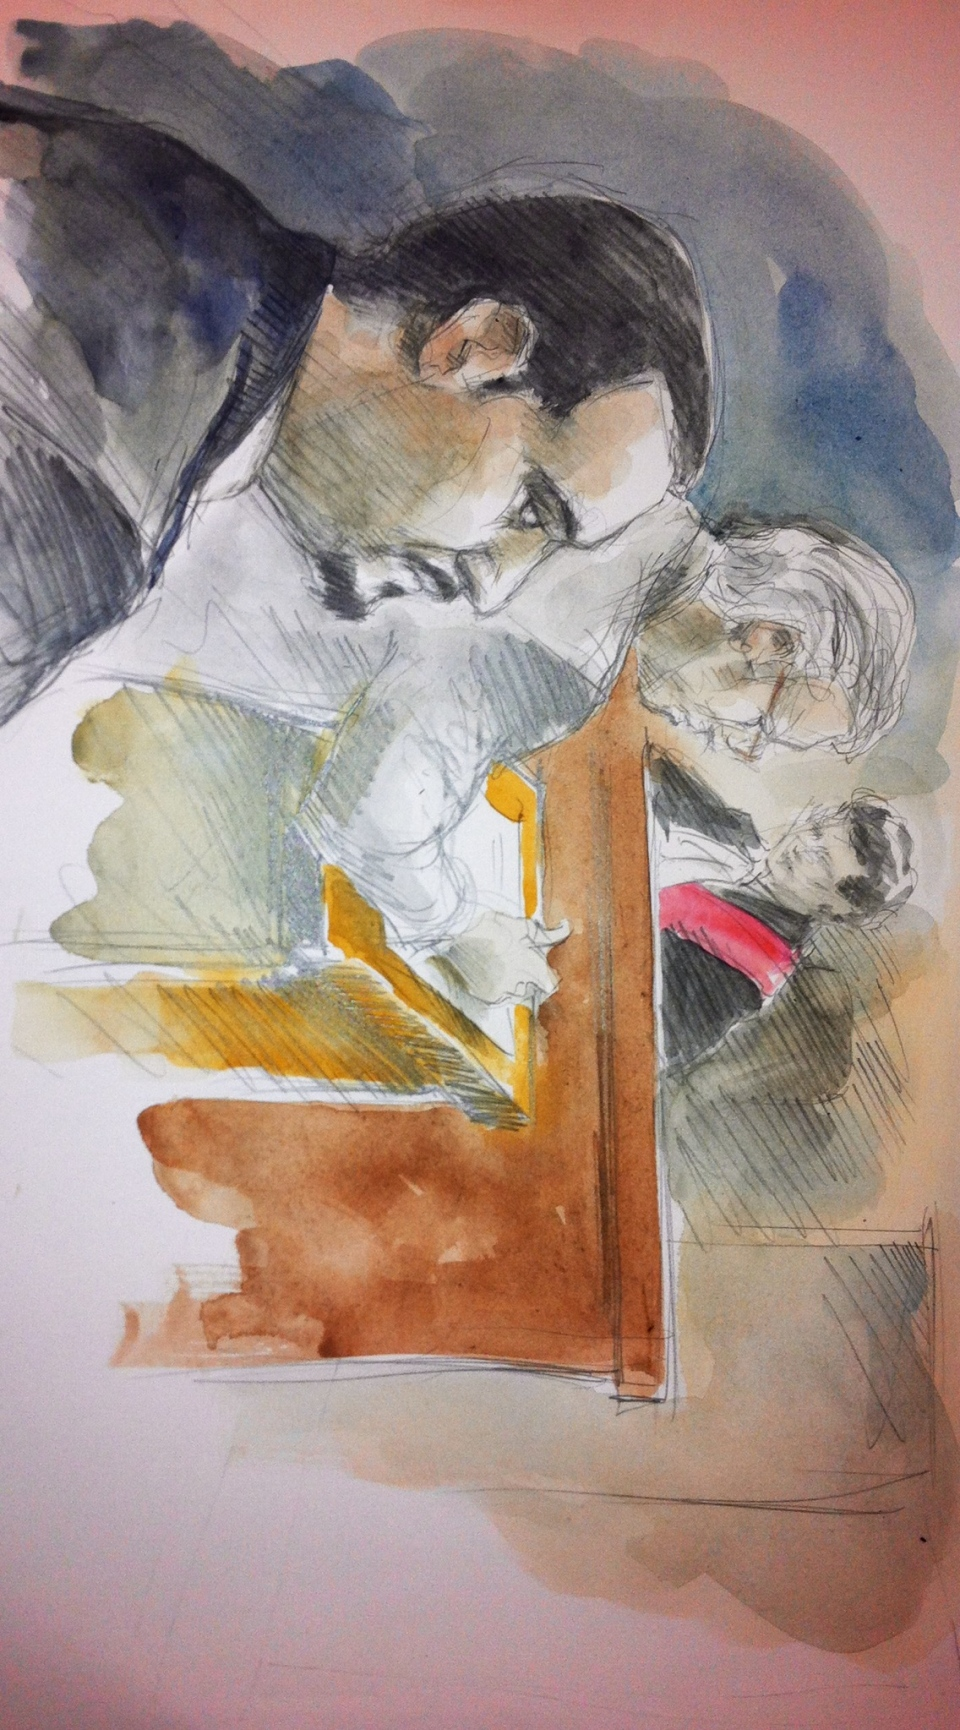 Babak Andalib-Goortani, left, appears in court June 3, 2013, in this court sketch. (Pam Davies/CTV)